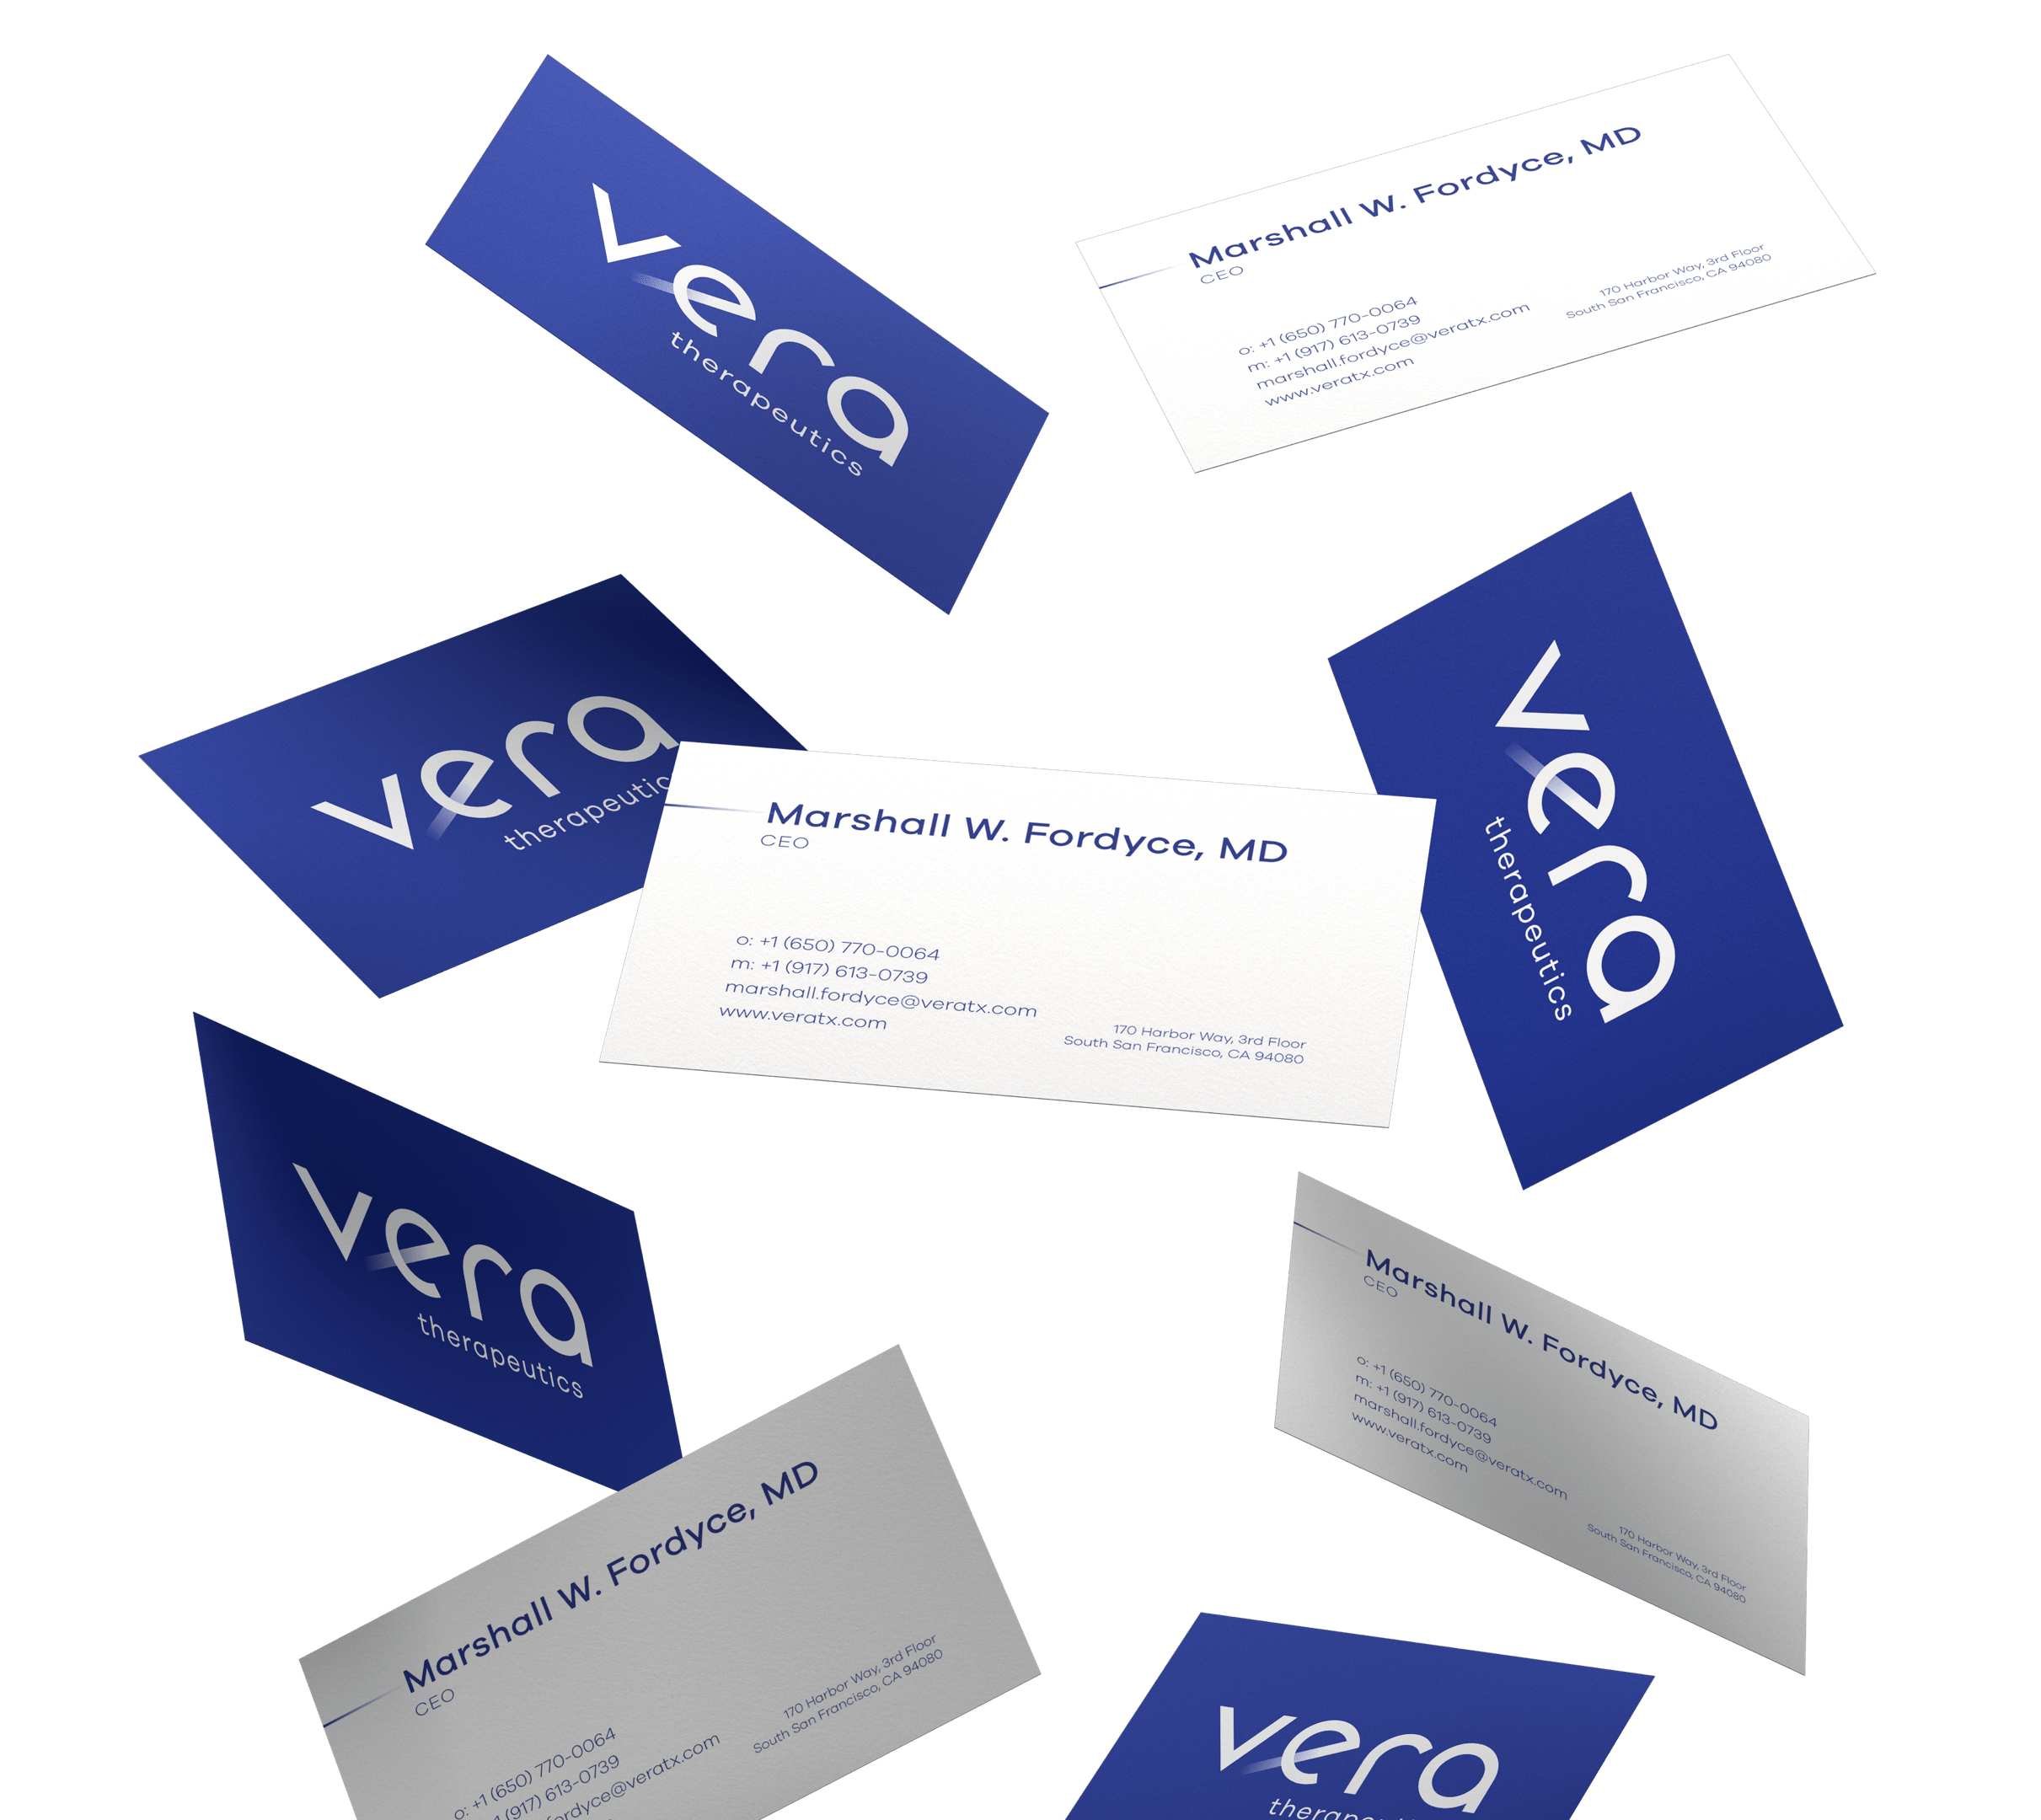 several blue and white Vera business cards floating in the air